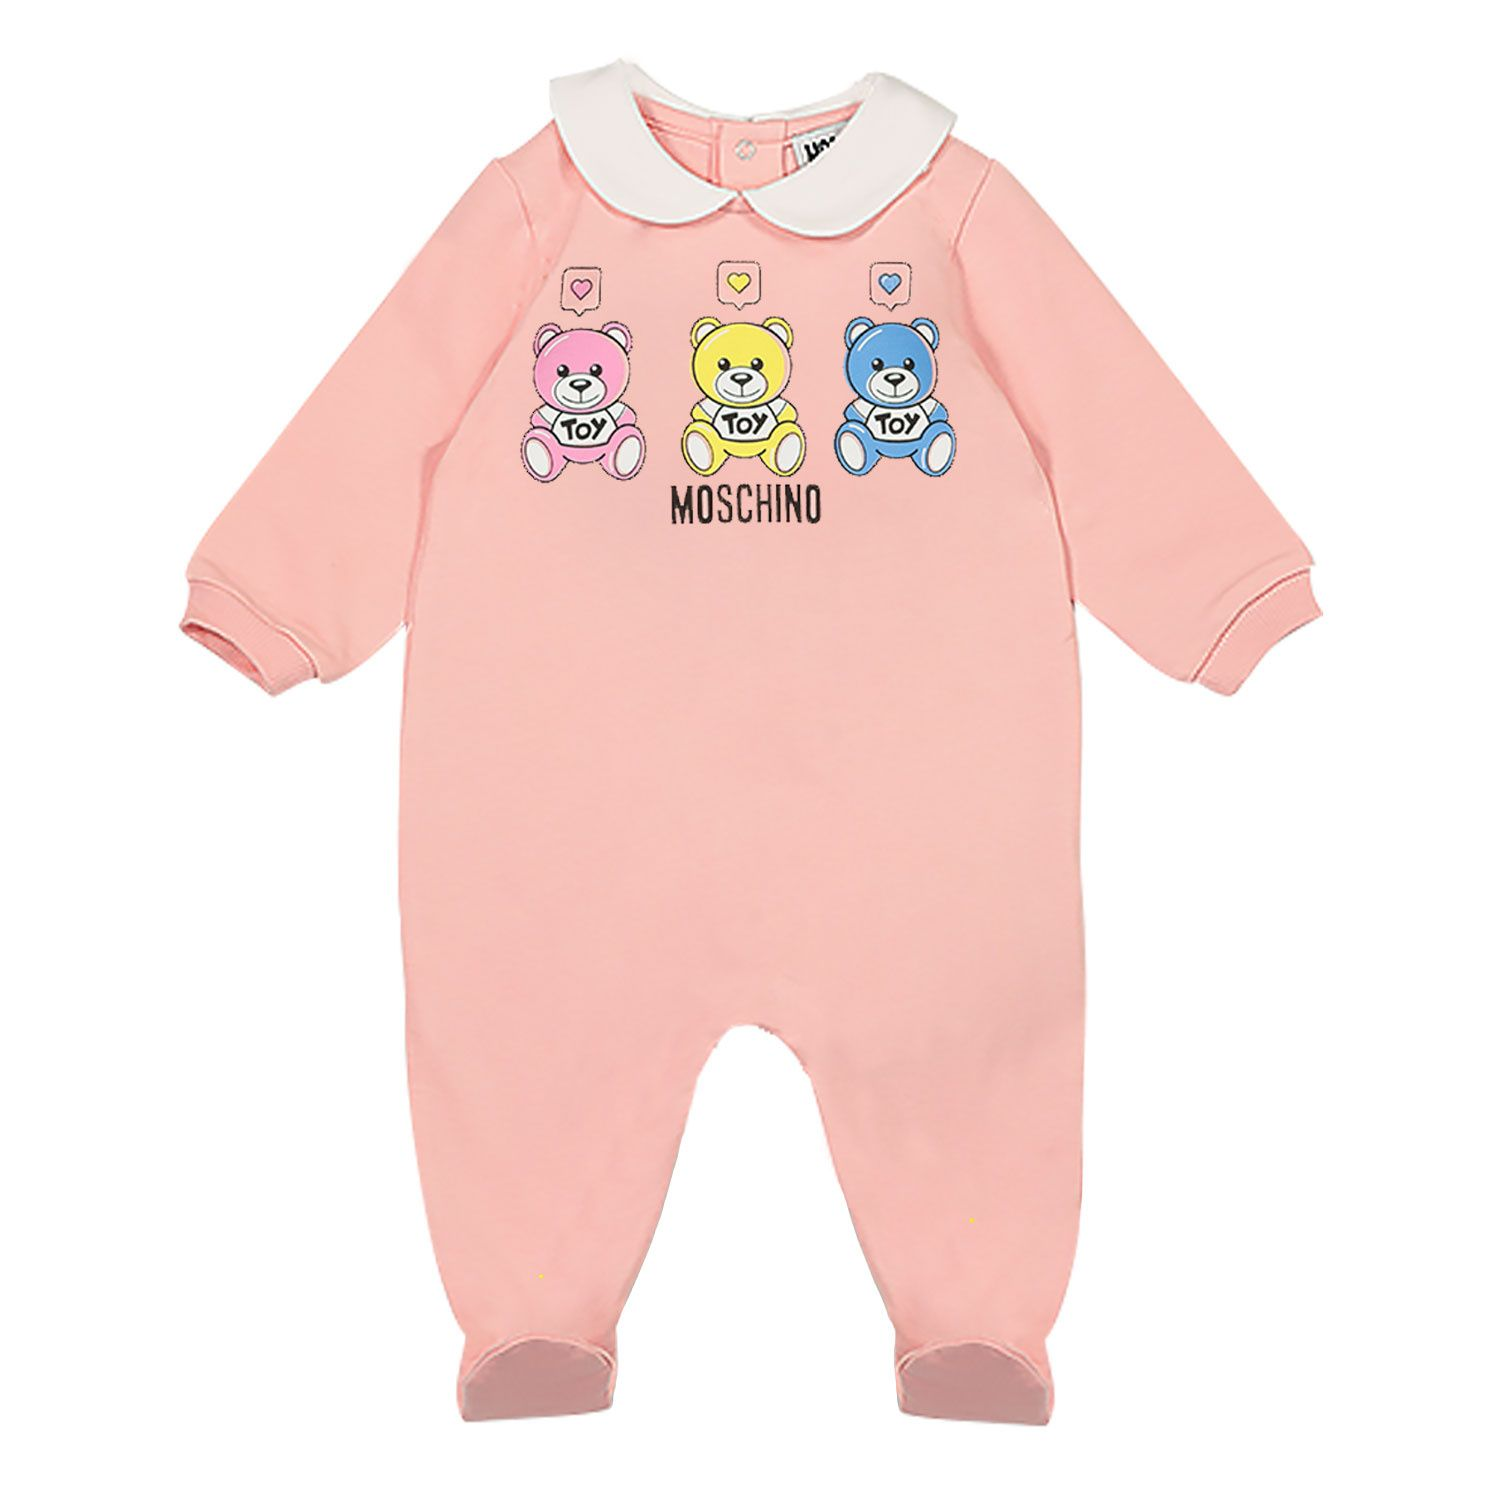 Picture of Moschino MNT01O baby playsuit pink